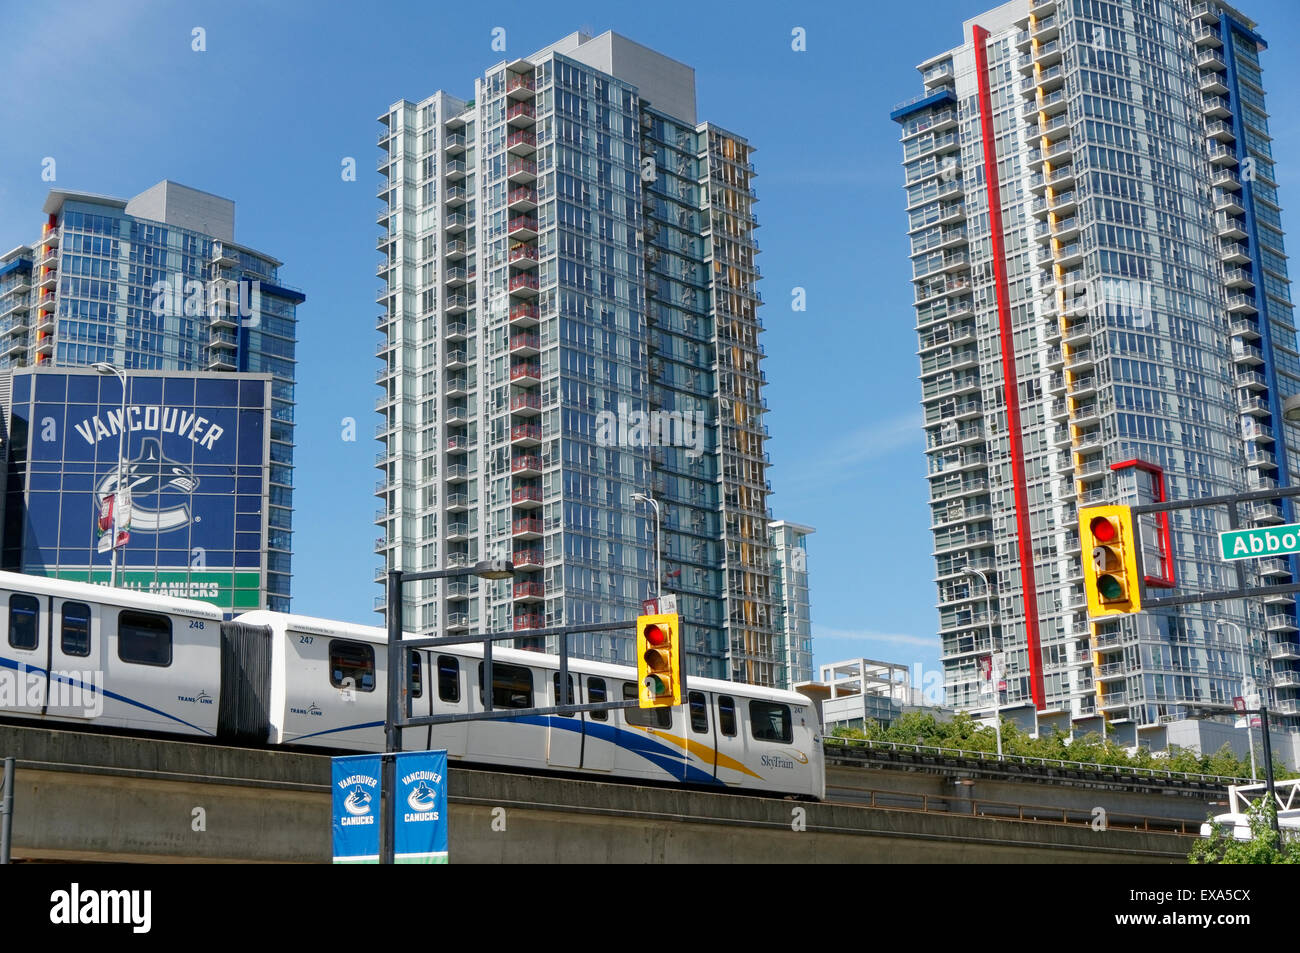 SkyTrain elevated train with newly built condominium towers in the background, Vancouver, BC, Canada Stock Photo